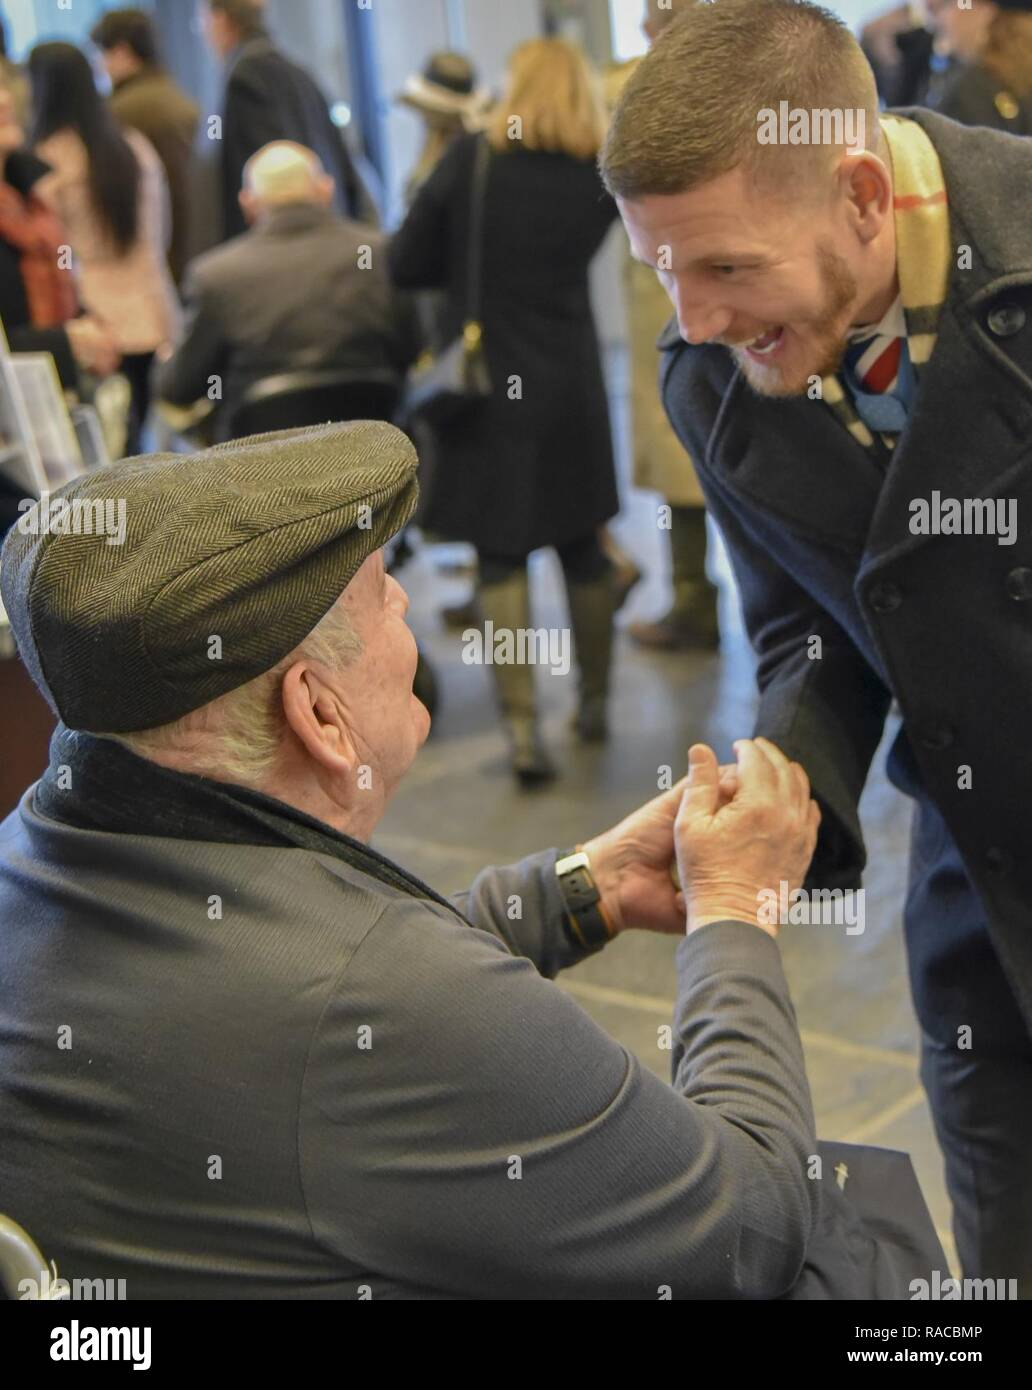 Former U.S. Army Spc. Kenneth Stumpf, Medal of Honor recipient and retired U.S. Marine Corps Cpl. William Kyle Carpenter, Medal of Honor recipient, exchange coins during a traditional Inaugural Day Medal of Honor breakfast held at the Reserve Officers Association headquarters in Washington D.C., January 20, 2017. Stock Photo